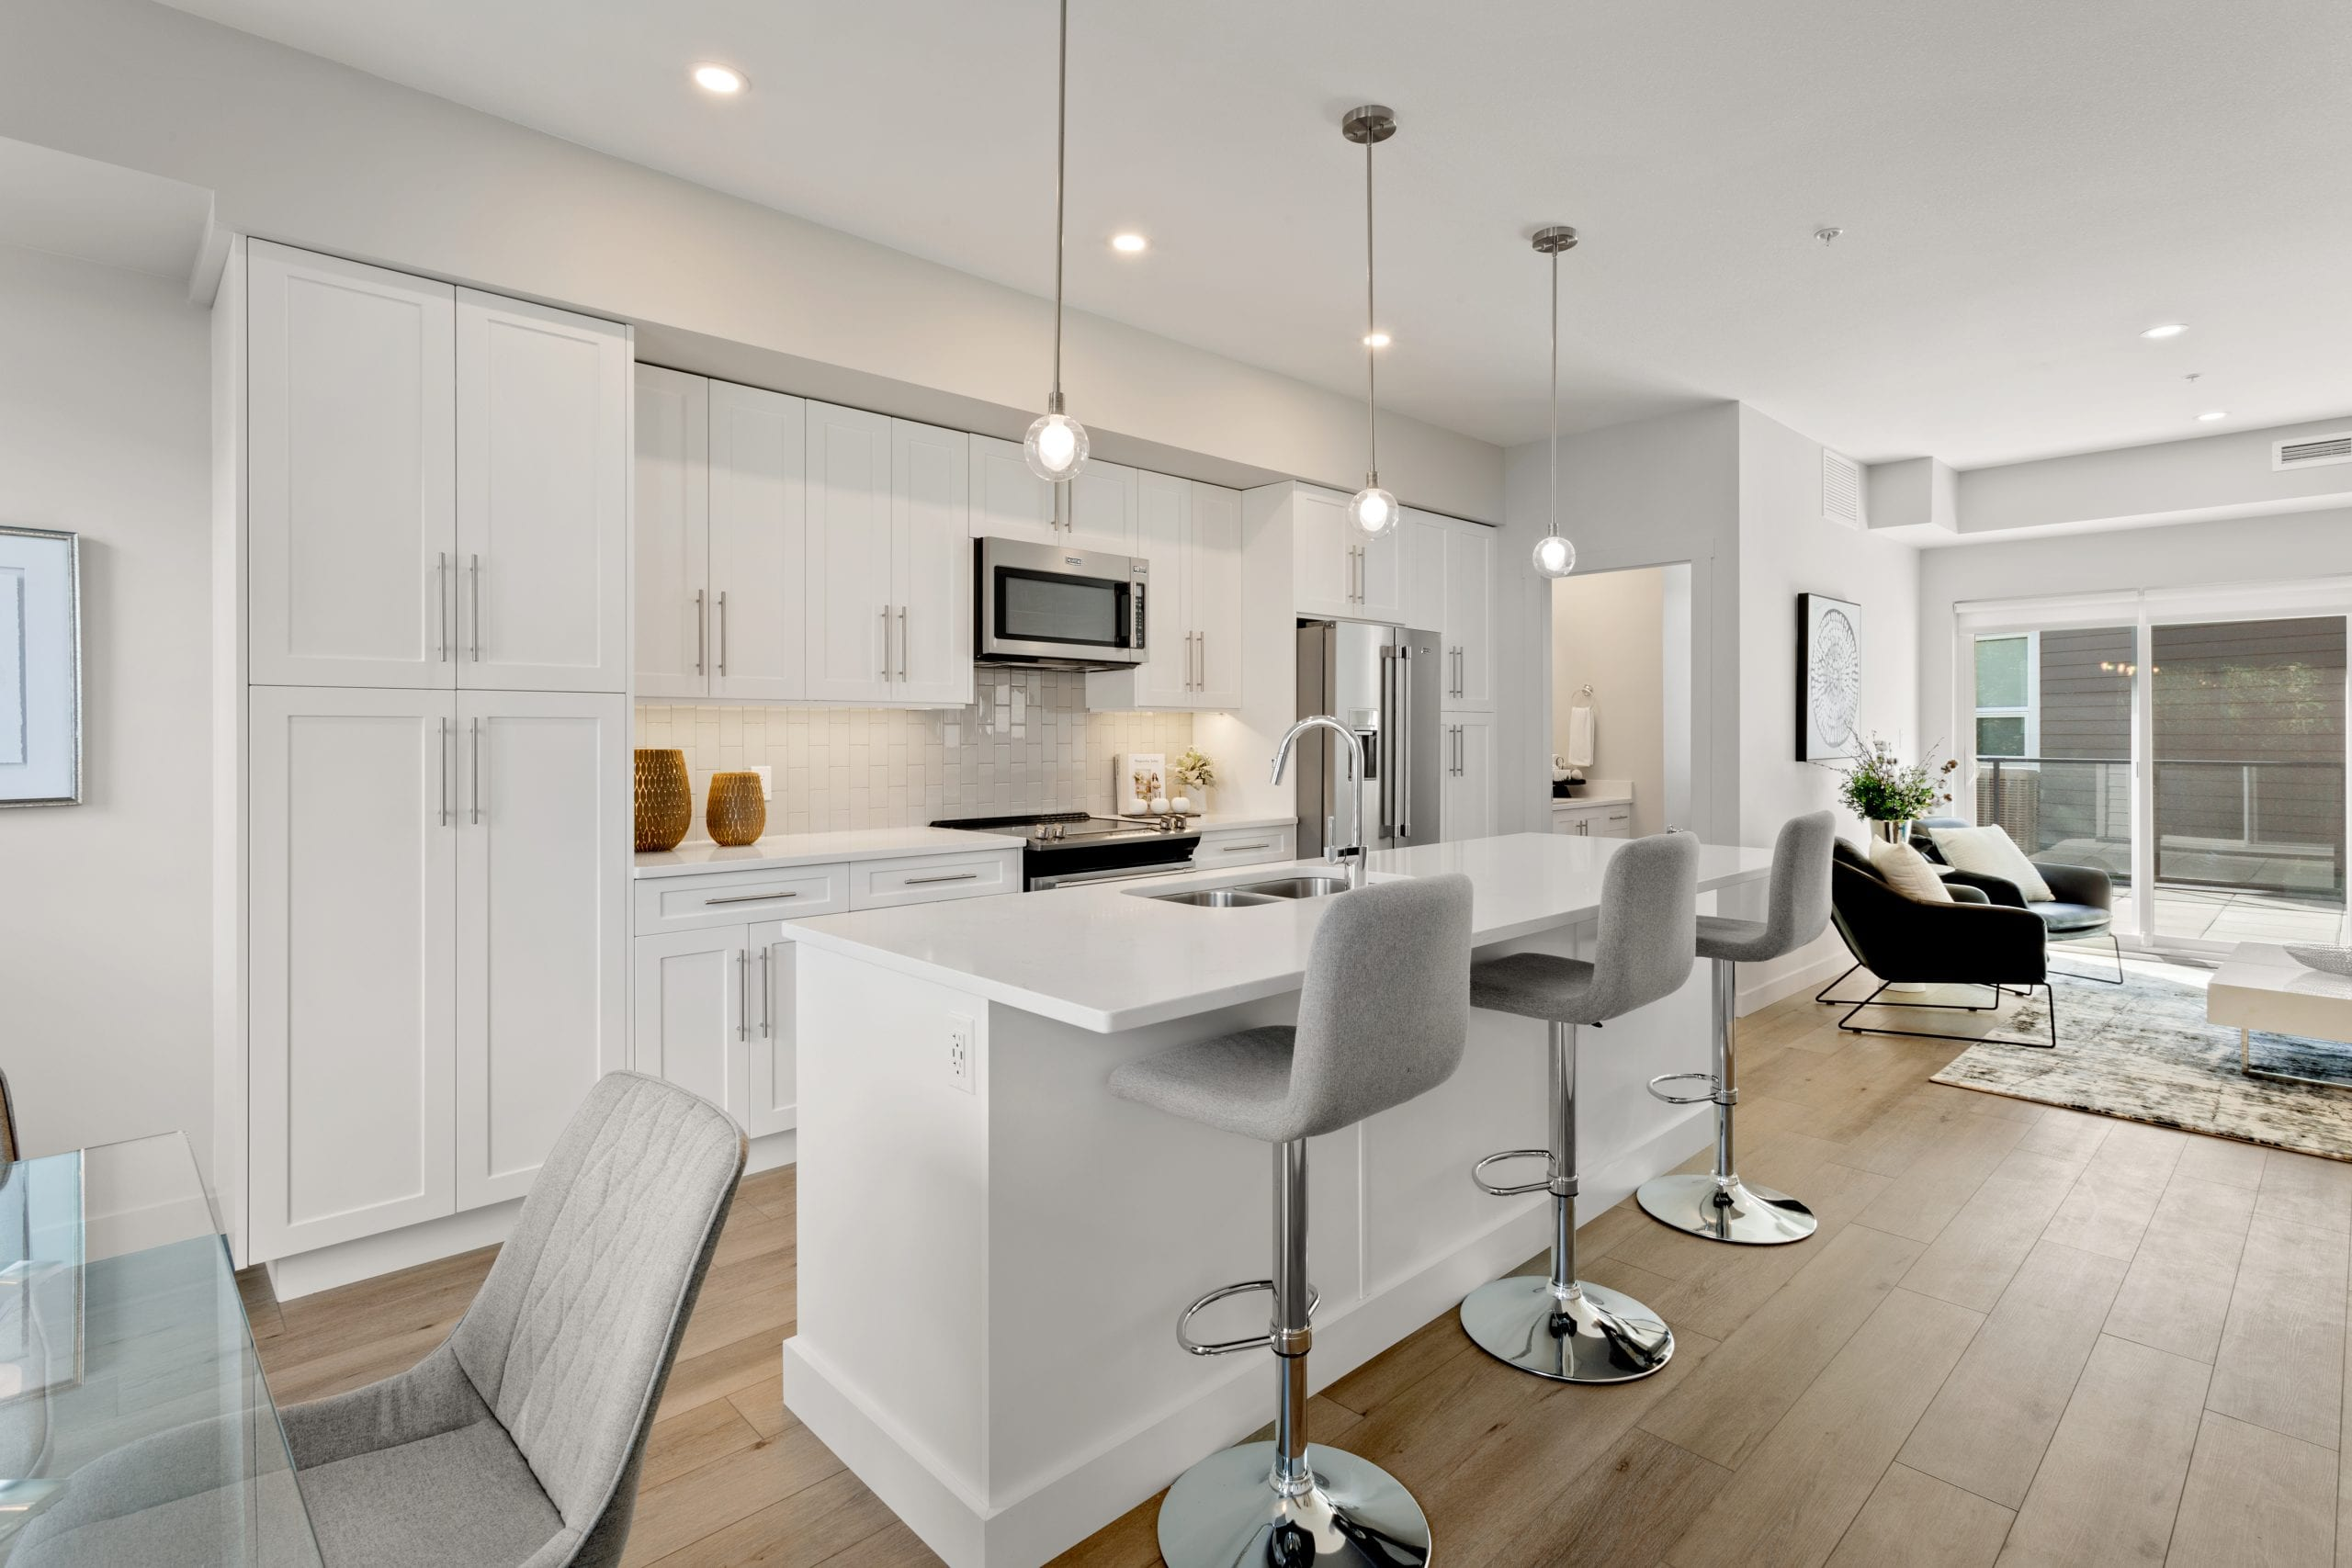 Kitchen, bright, open concept, modern